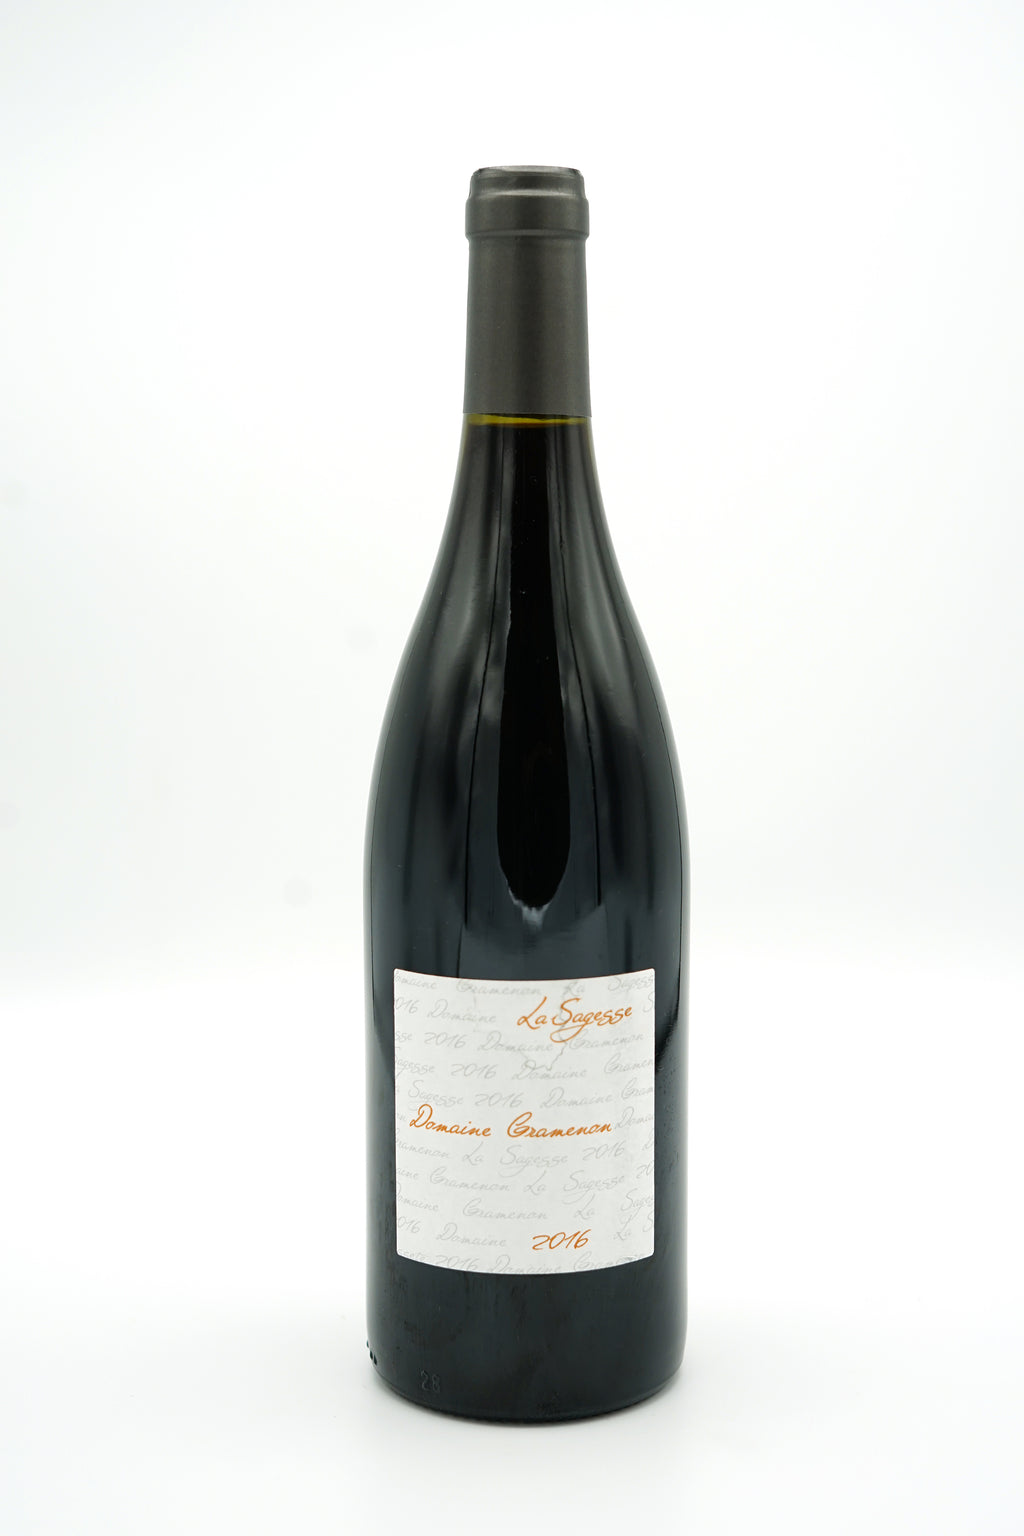 La Sagesse 2017 - Domaine Gramenon - SOLD OUT